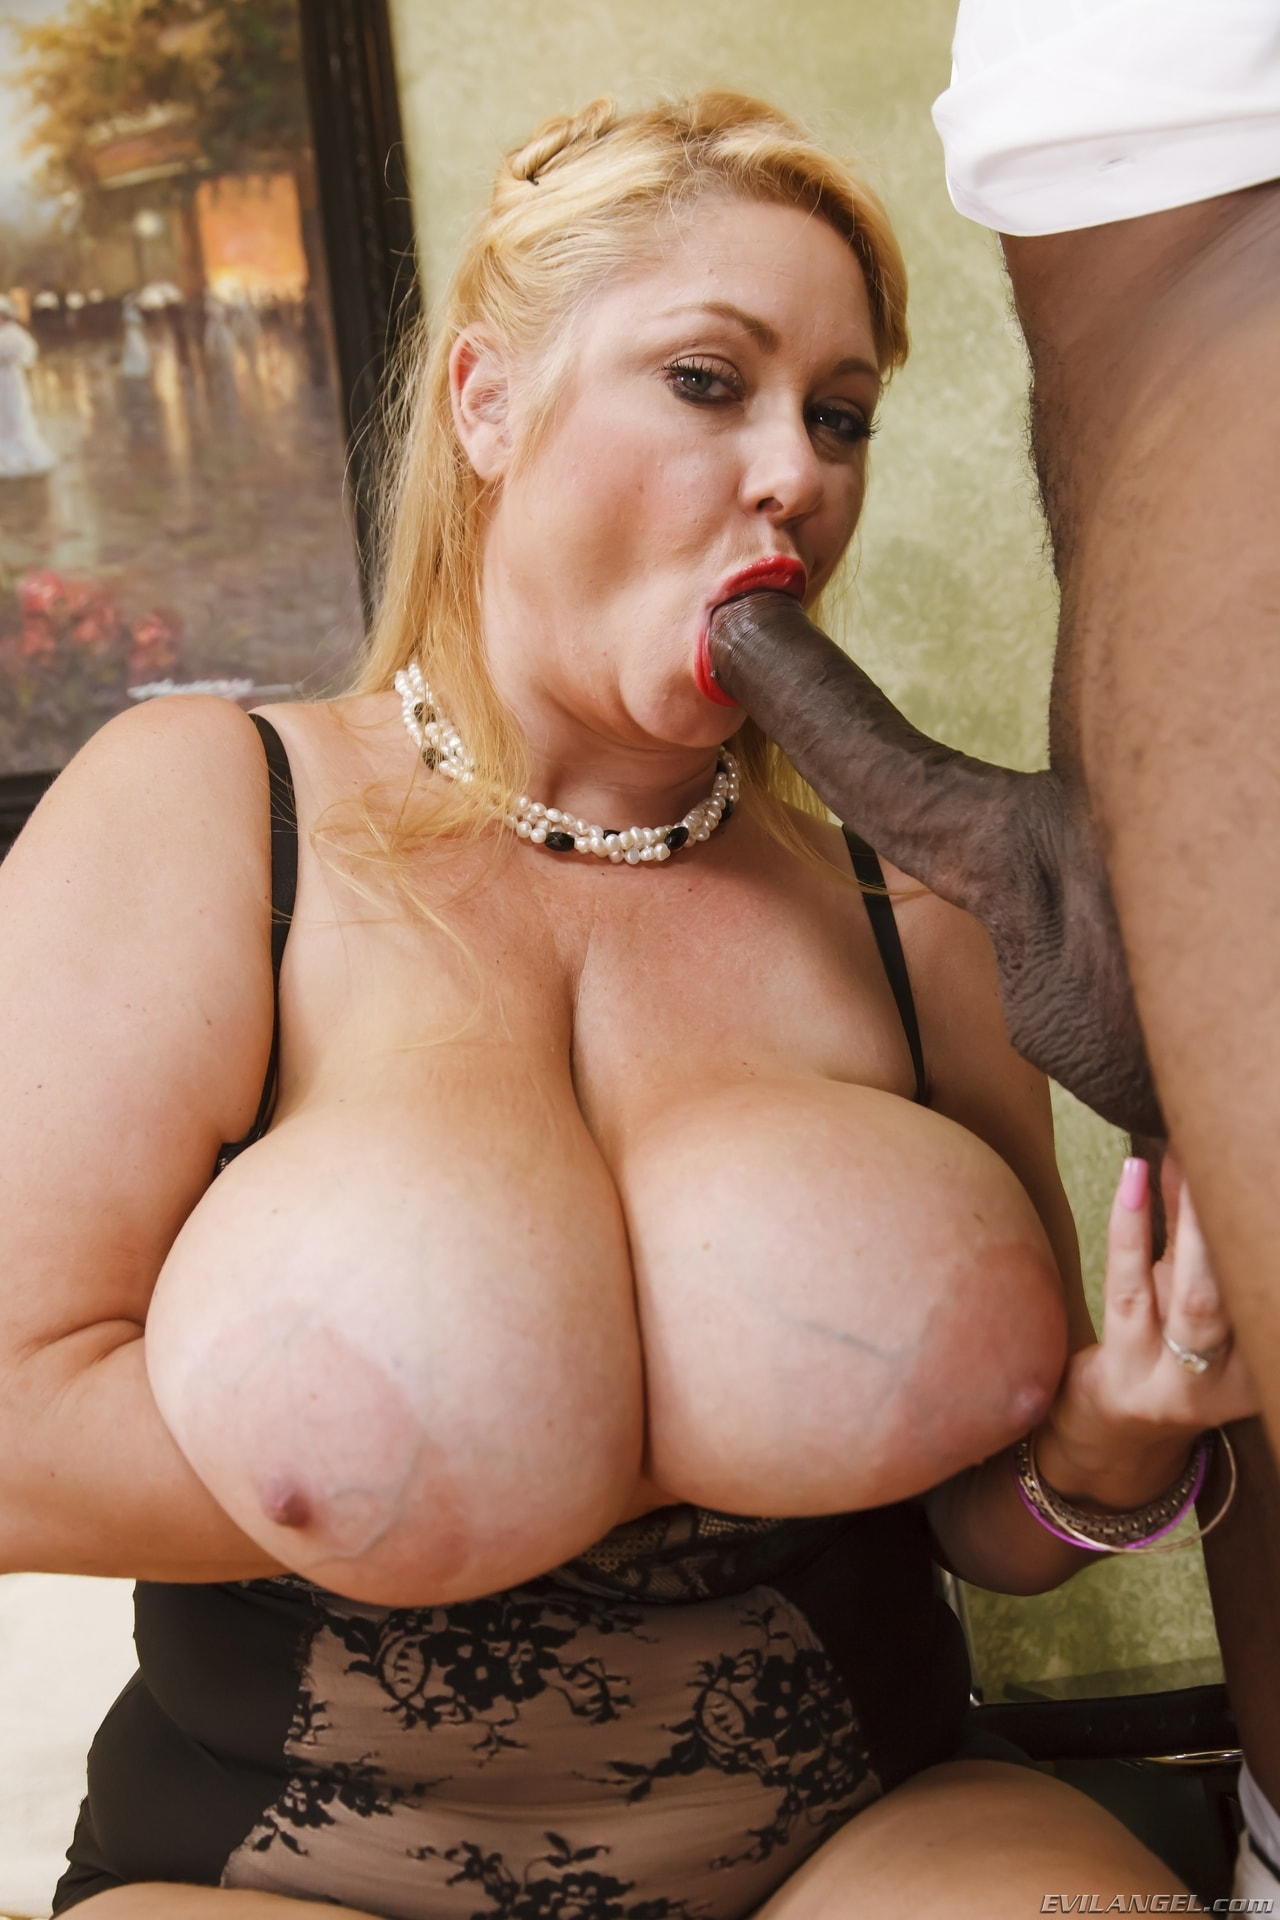 Large Areolas and Nipples